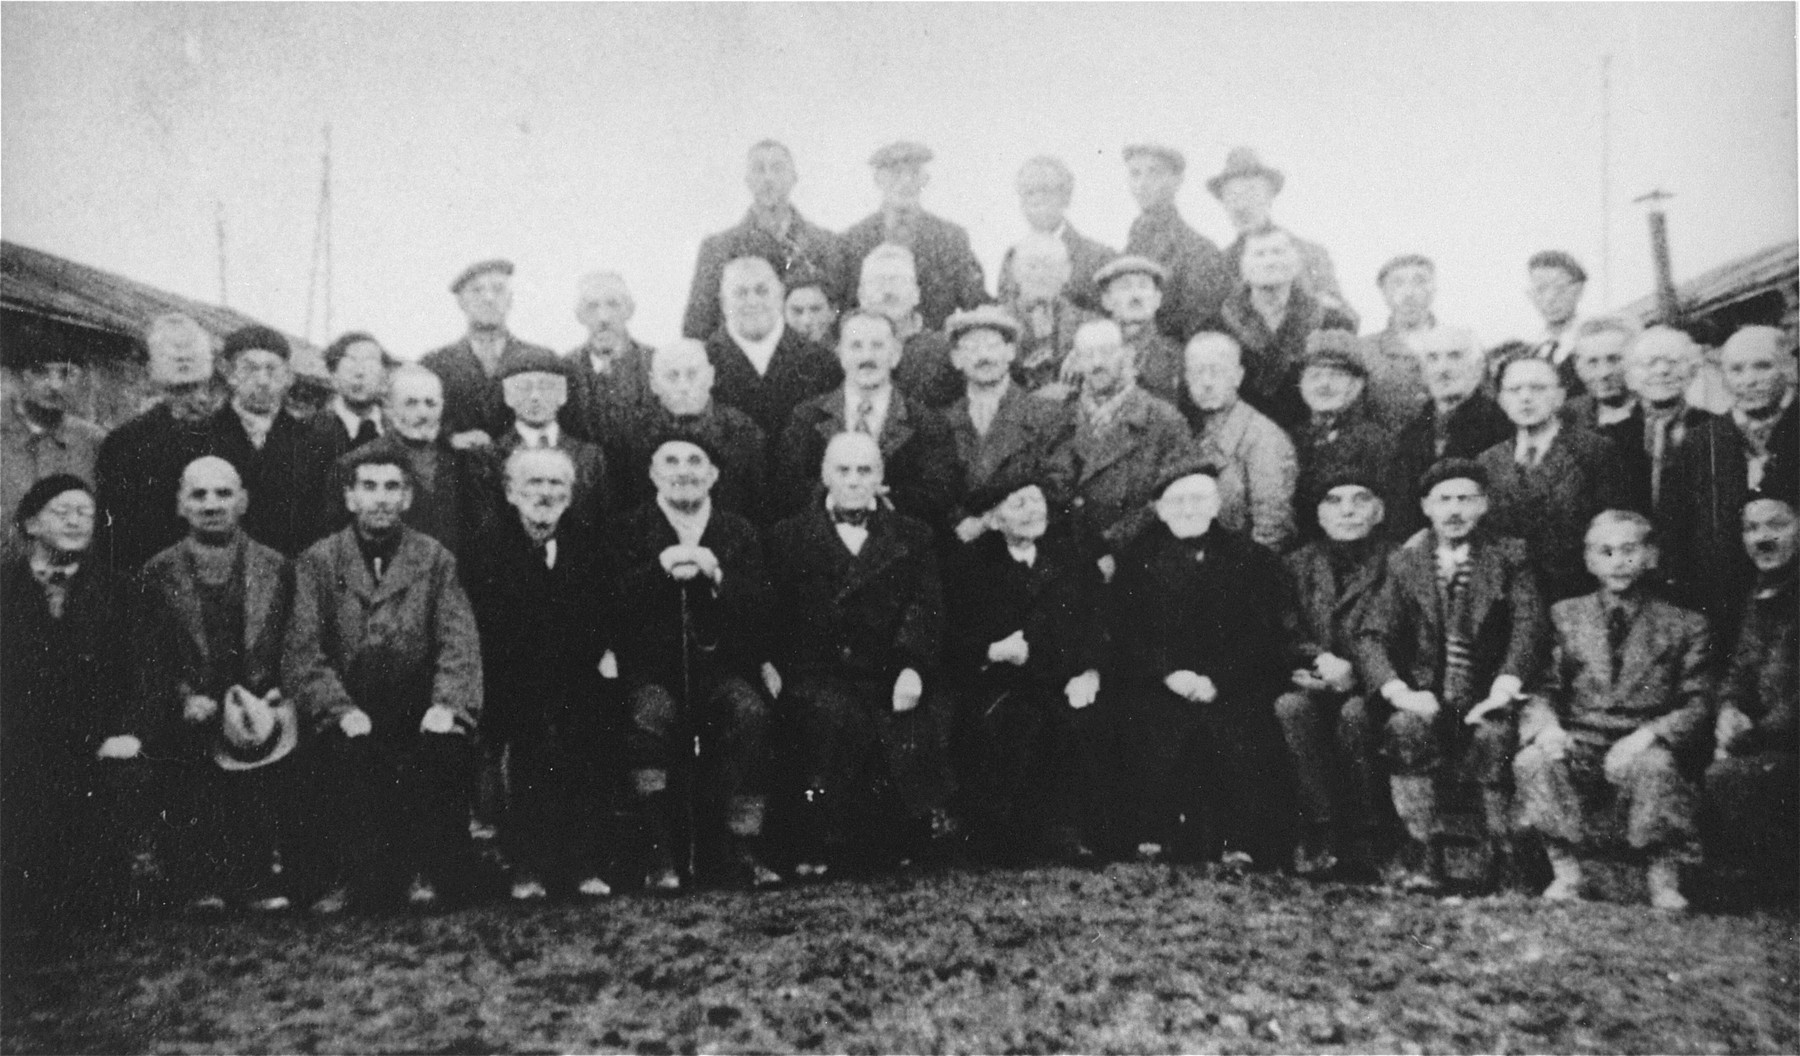 Group portrait of Jewish inmates in the Gurs internment camp.    Among those pictured are: Oskar Wachenheimer (back row, left), Hugo Wachenheimer (second row, fourth from the right), Julius Wachenheimer (front row, sixth from the right).  Hugo and Oskar perished in Auschwitz, and Julius died in the Noe internment camp.